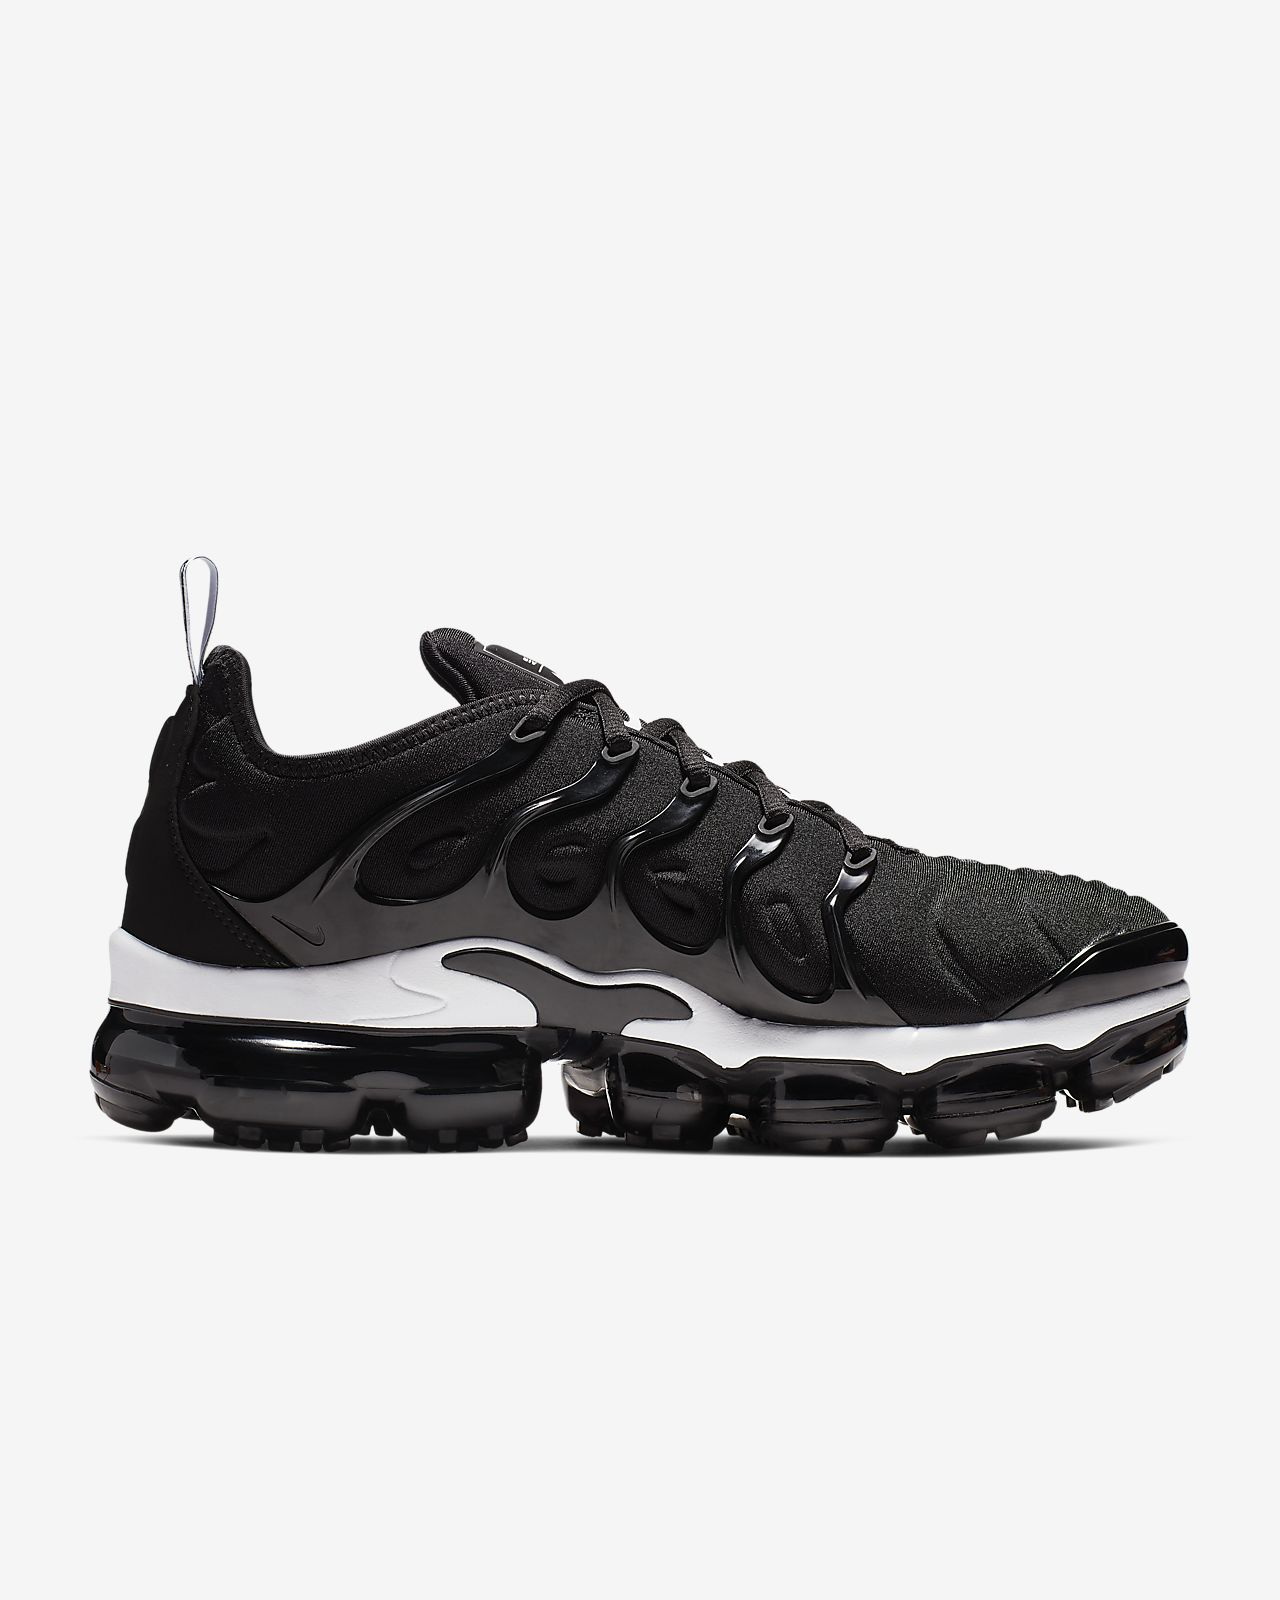 983bd988965 Nike Air VaporMax Plus Men s Shoe. Nike.com CA